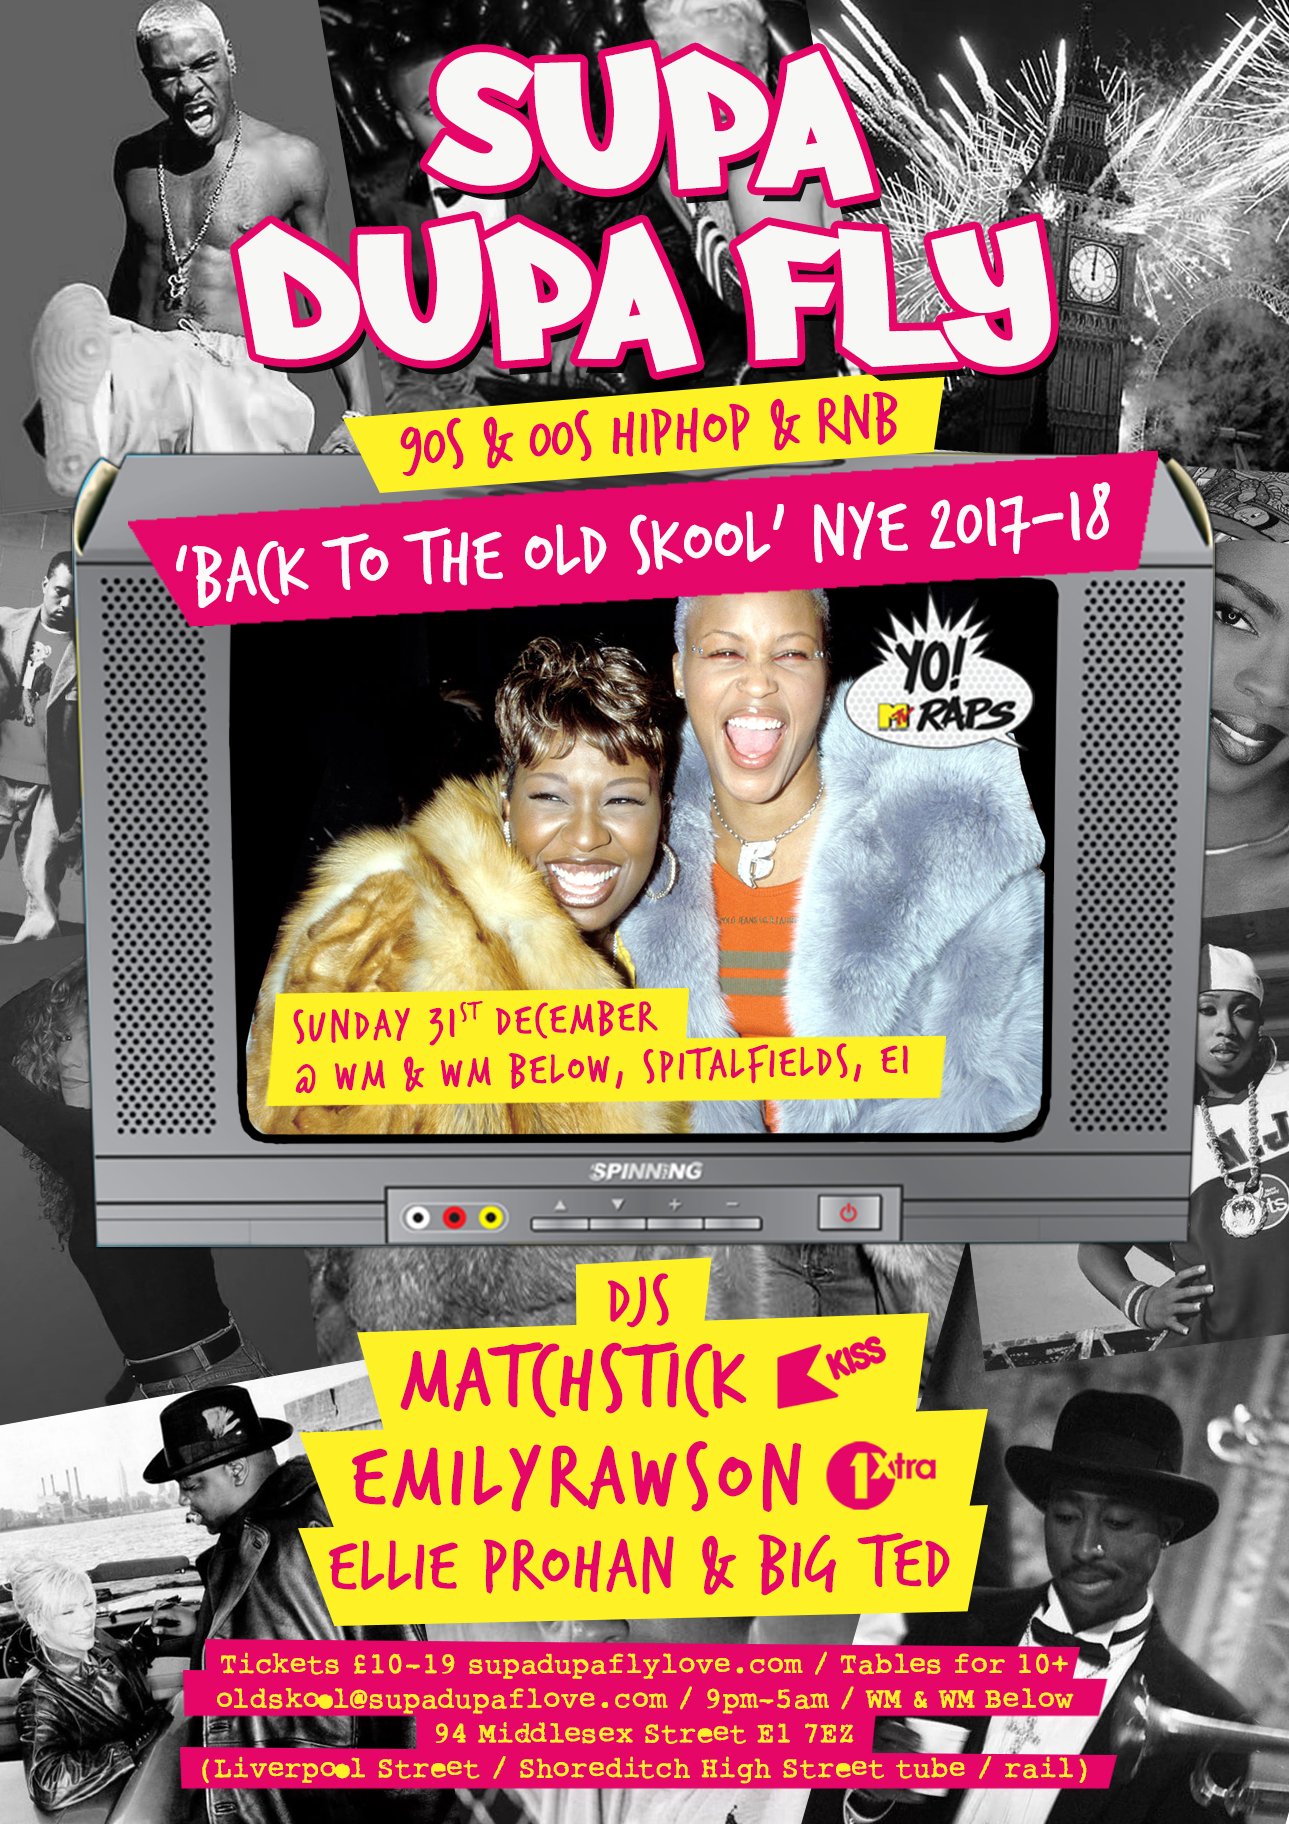 Supa Dupa Fly x Back To The Old Skool x NYE